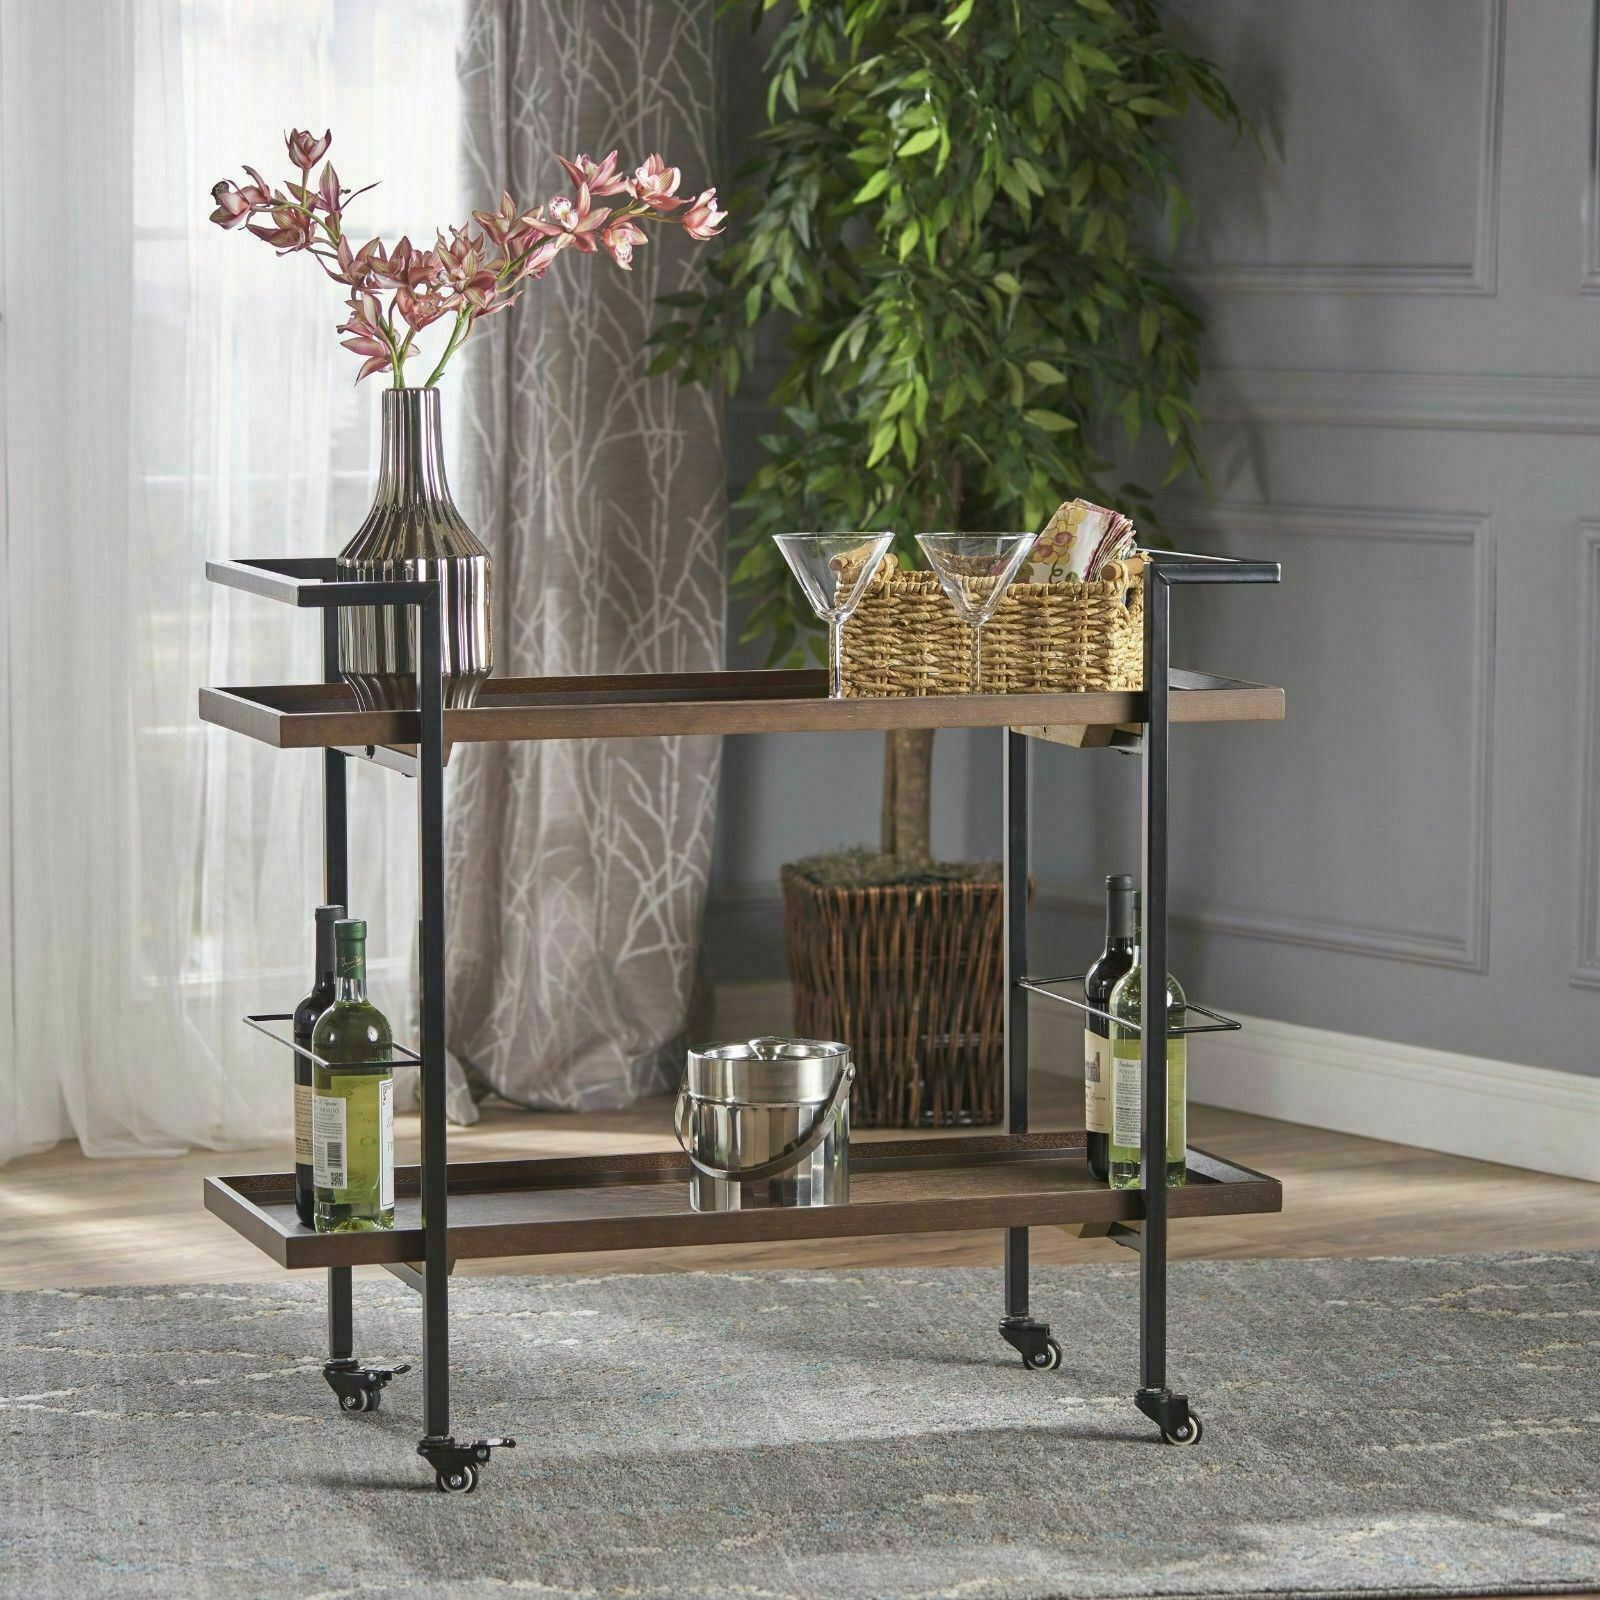 Gerard Modern Industrial Two Shelf Wood Finished Bar Cart With Rolling Casters For Sale Online